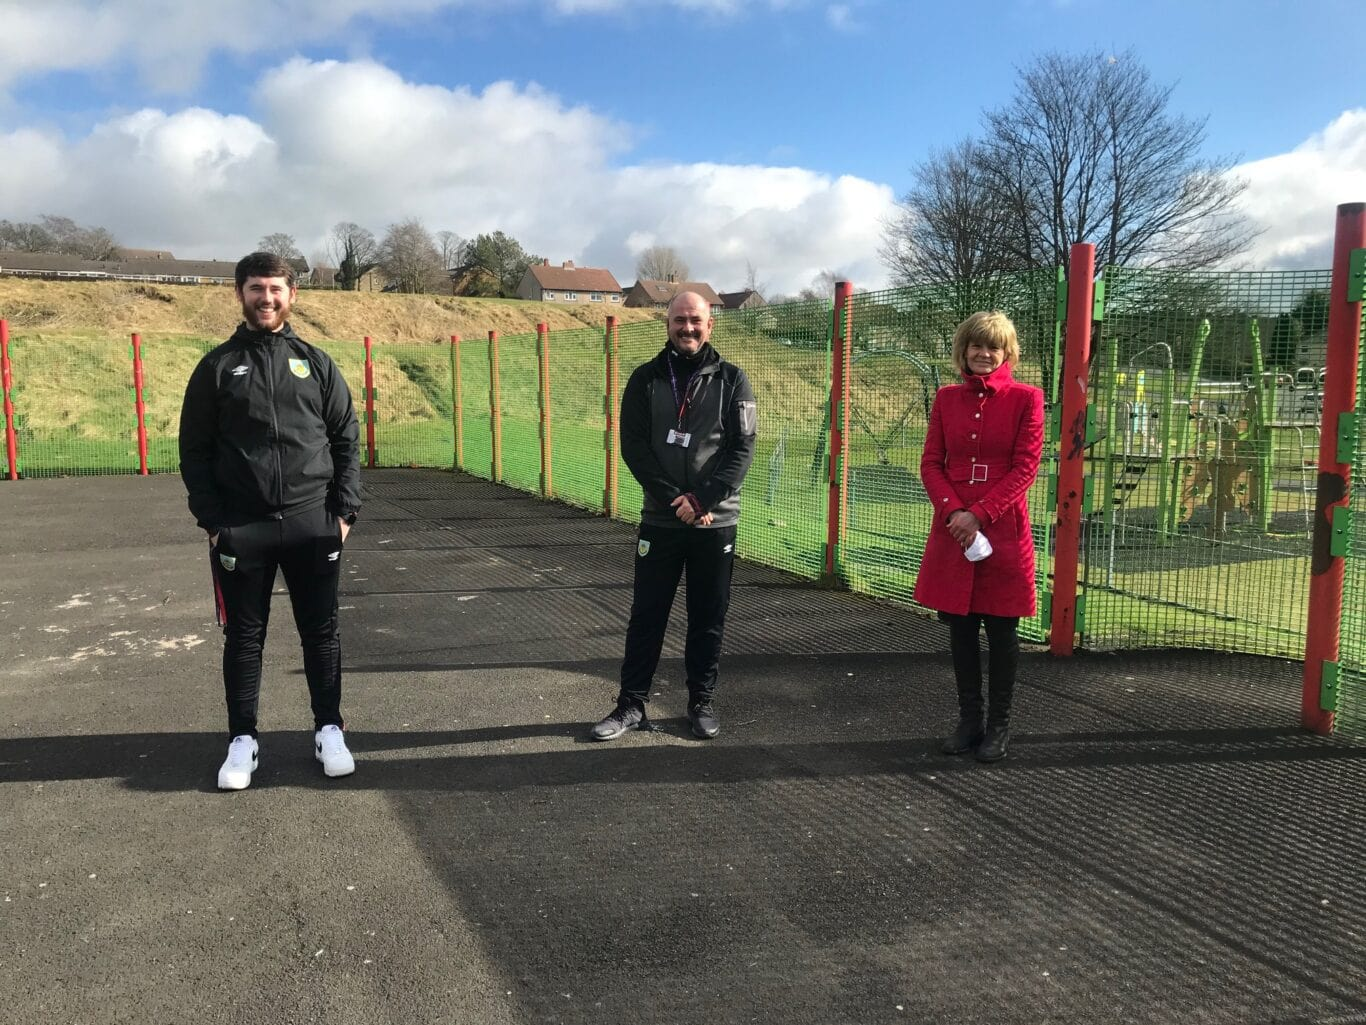 weekly 5 a side football with Burnley FC In The Community